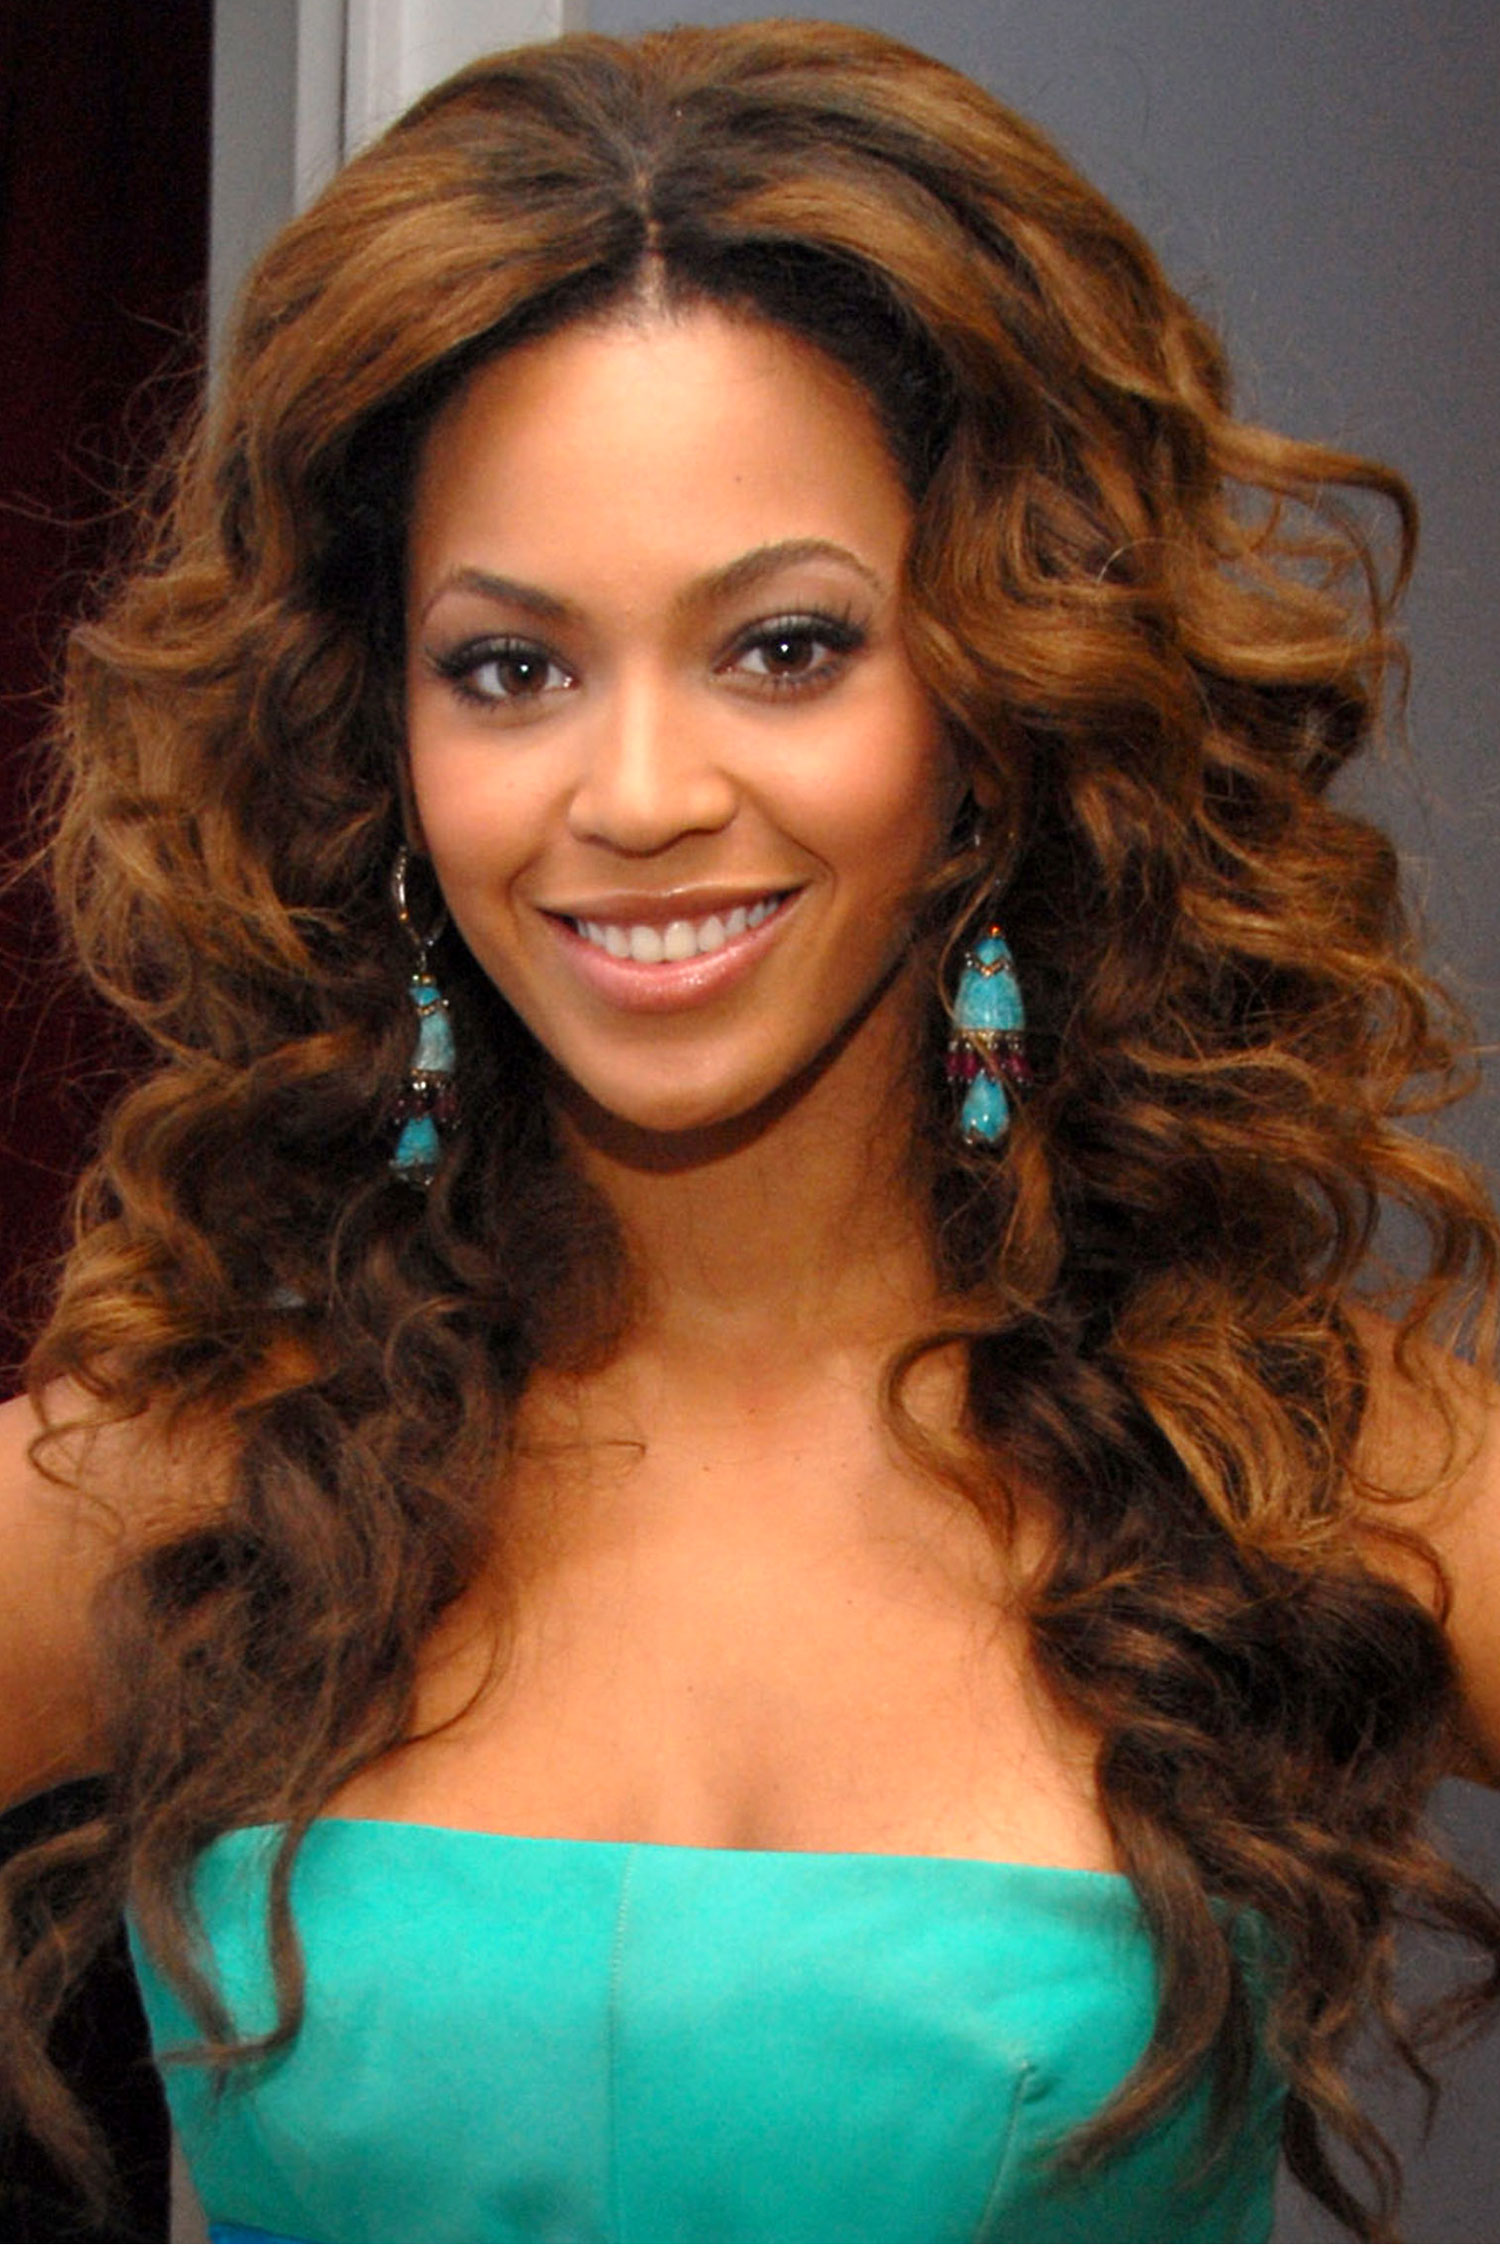 40 Beyonce Hairstyles - Beyonce's Real Hair, Long Hair and Short ...